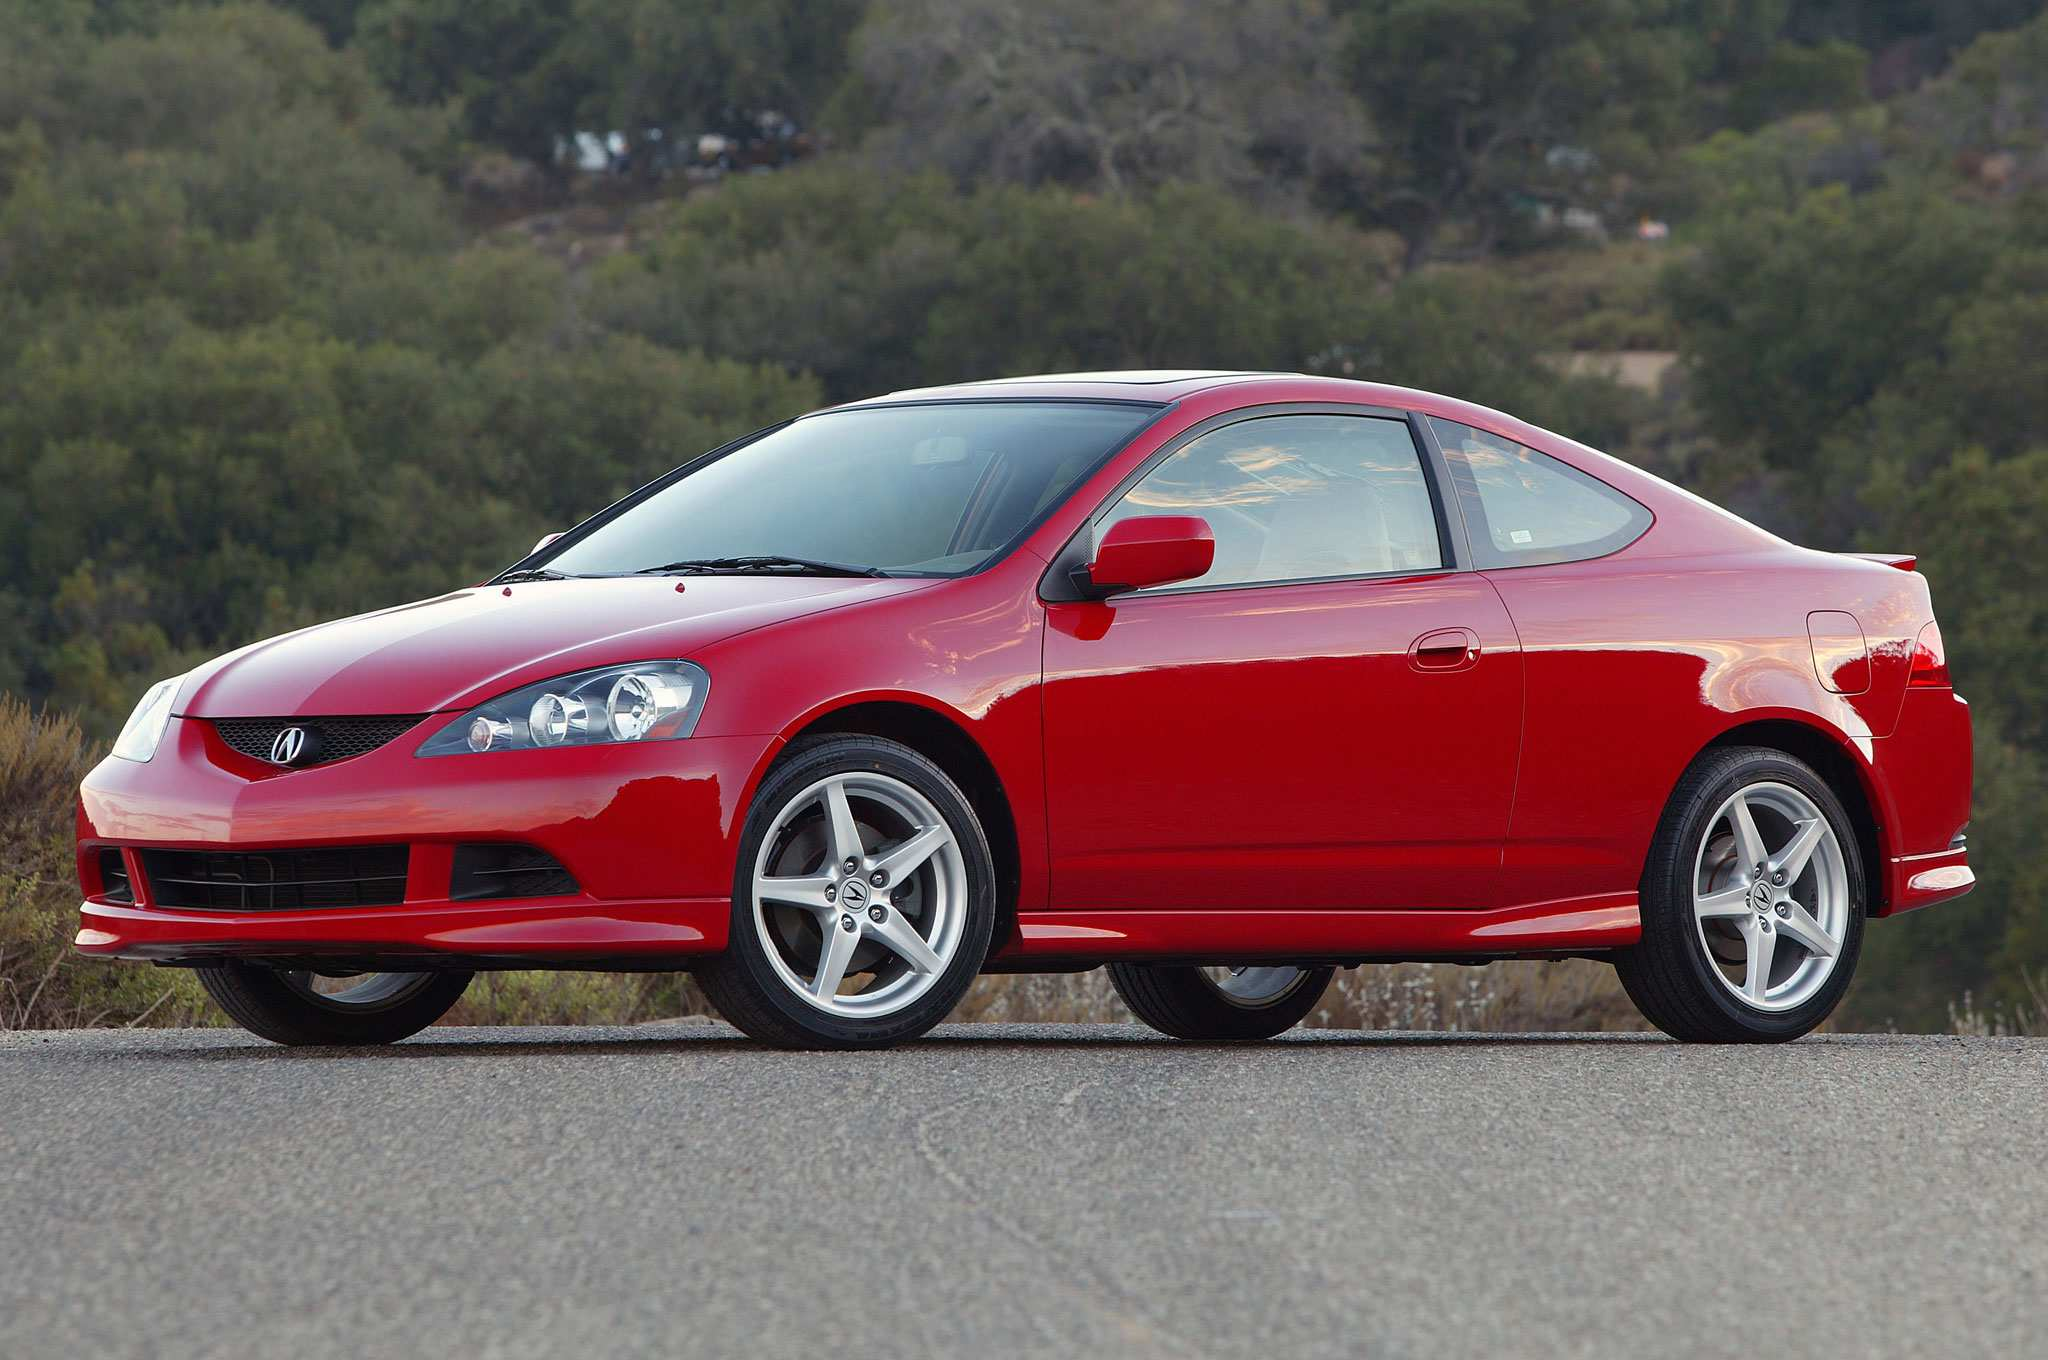 45 The Best 2020 Acura Rsx Configurations